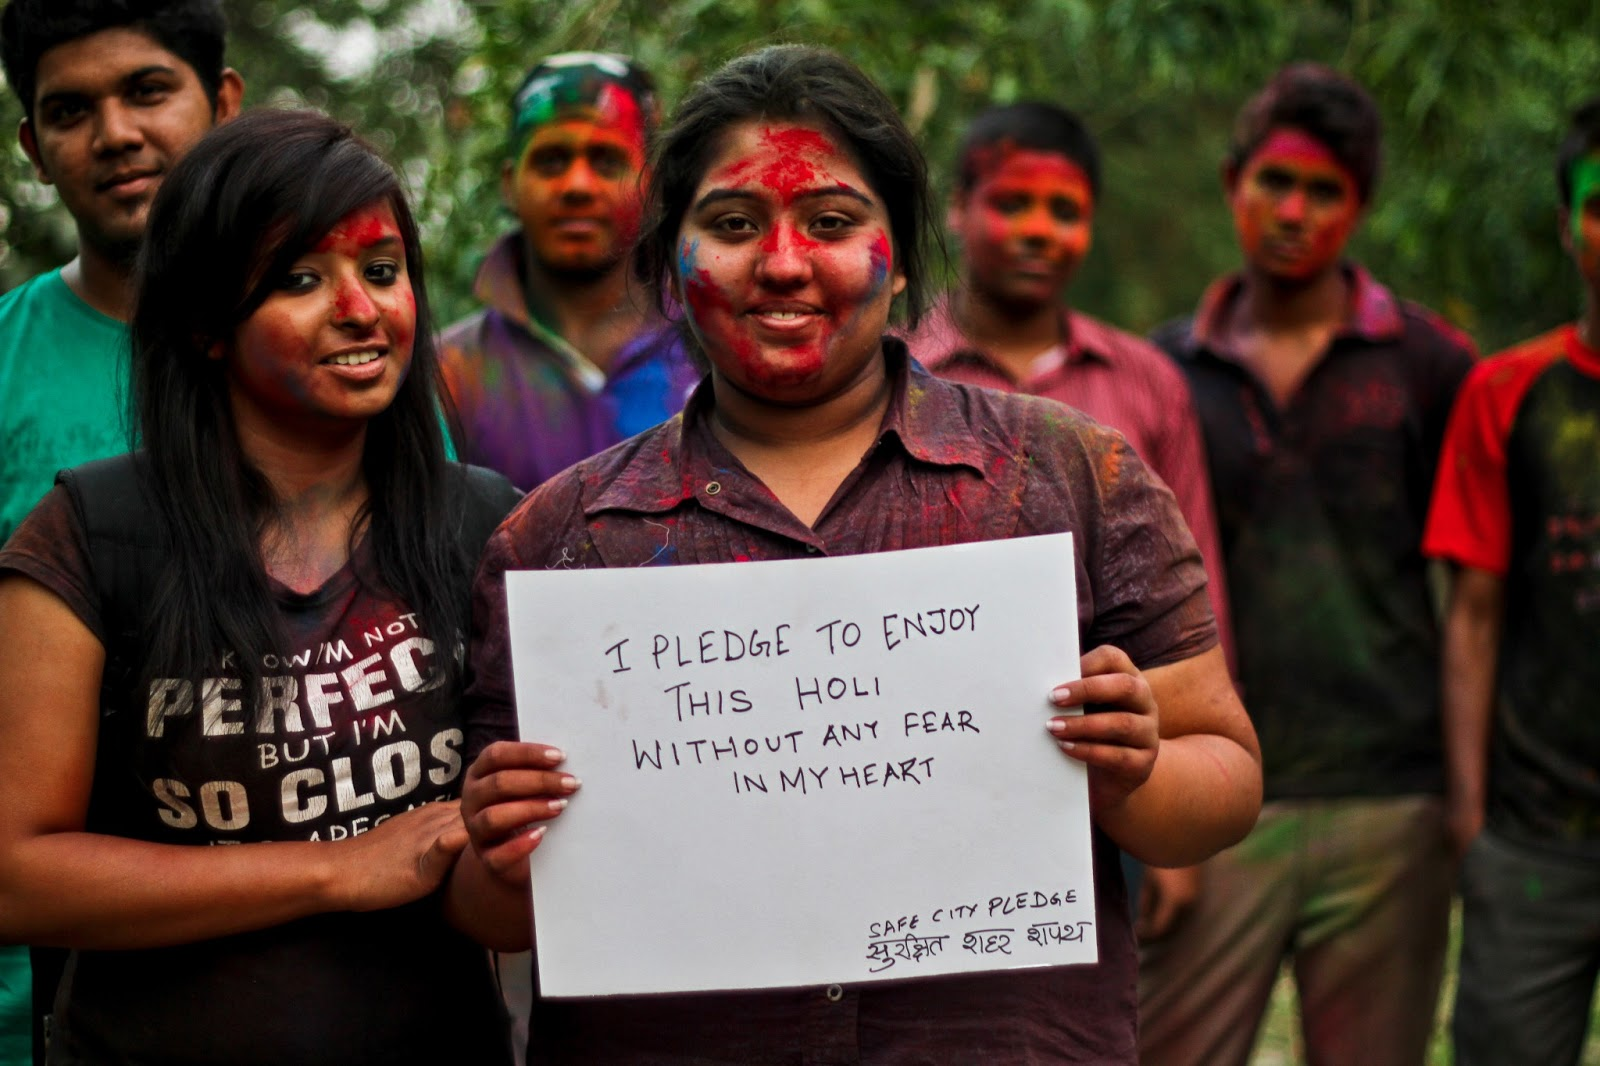 This Is How Eve Teasing Remained The Darker Side Of Holi - A Bitter Truth 2